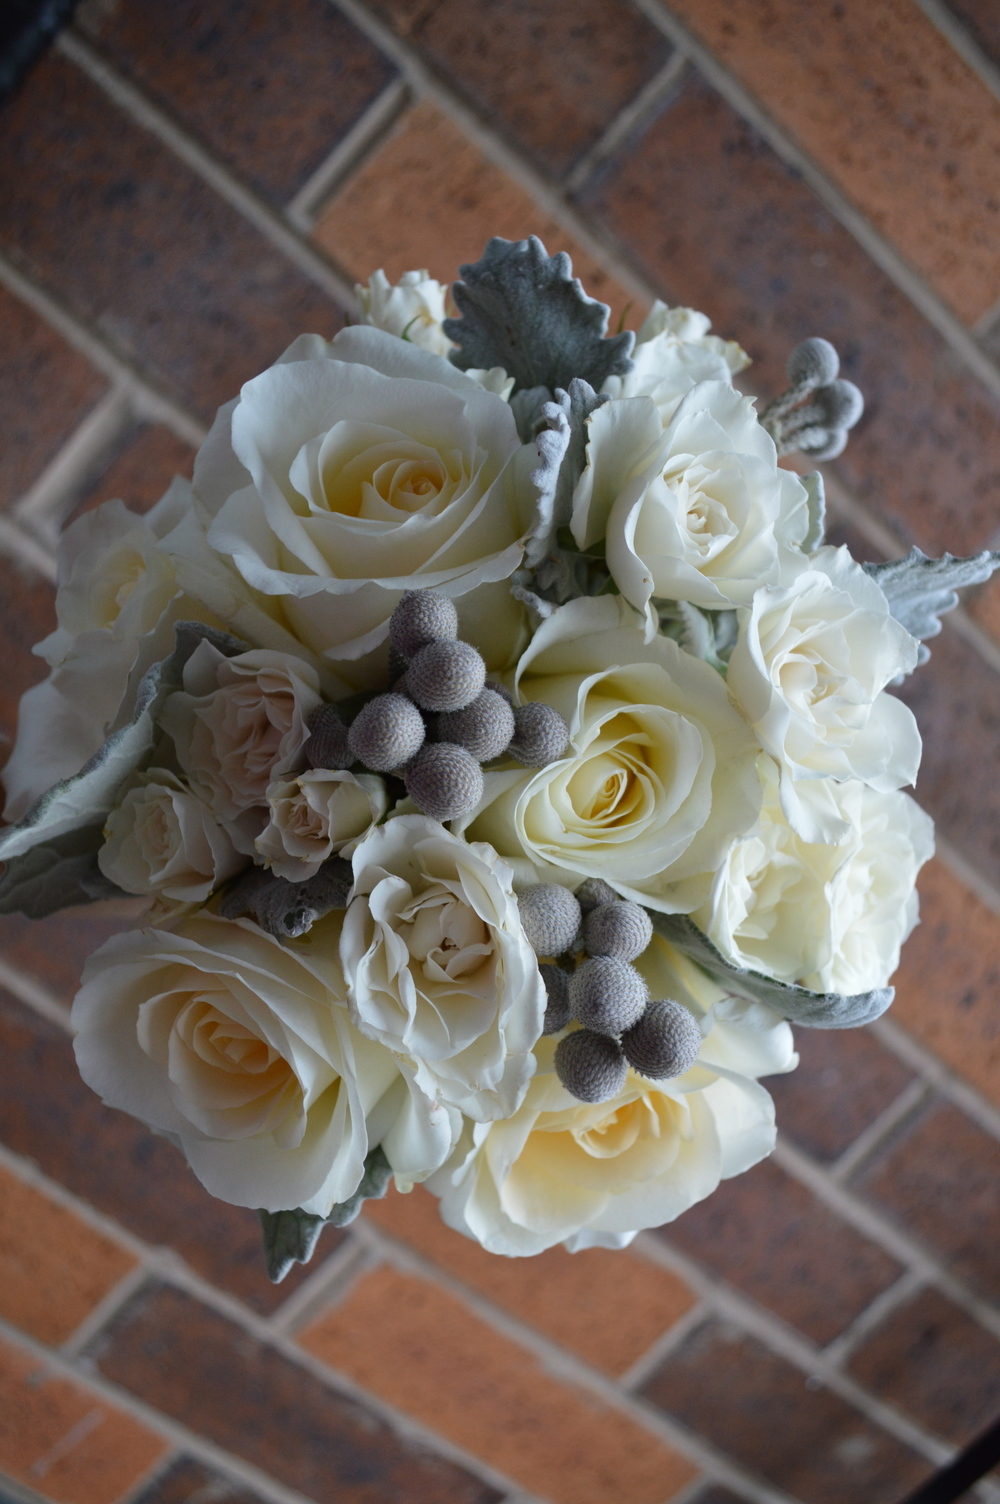 Bridesmaids had matching bouquets of Blizzard Roses, Spray Roses, Brunia and accenting Dusty Miller, wrapped in a silver ribbon with accenting pearl pins.